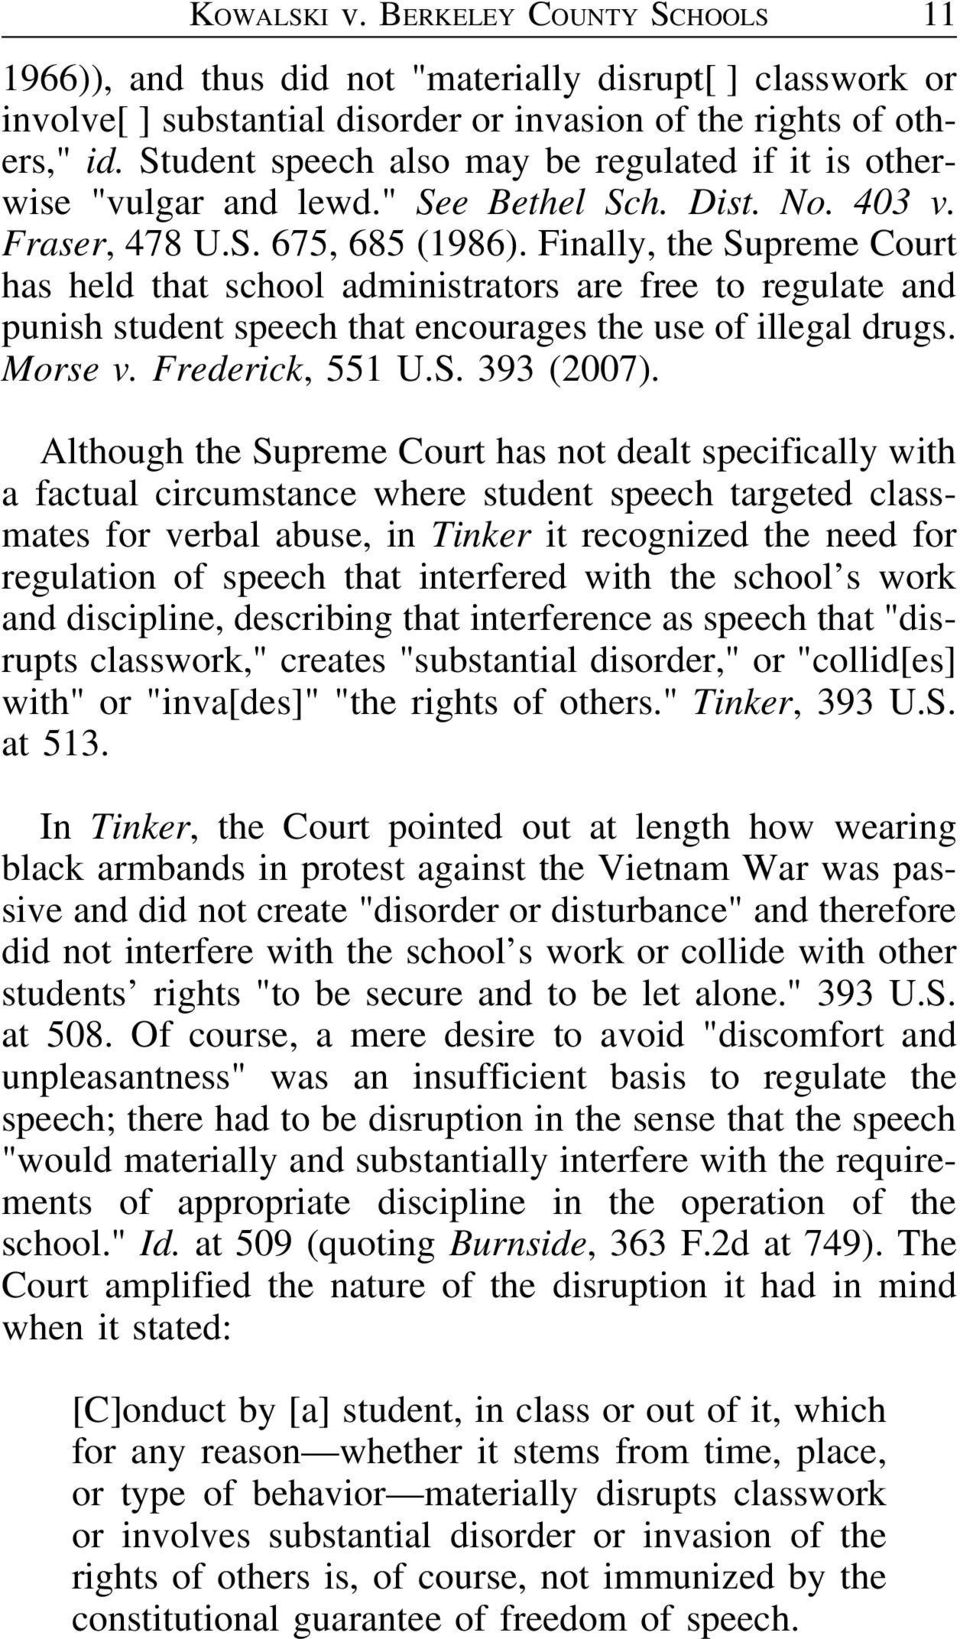 Finally, the Supreme Court has held that school administrators are free to regulate and punish student speech that encourages the use of illegal drugs. Morse v. Frederick, 551 U.S. 393 (2007).